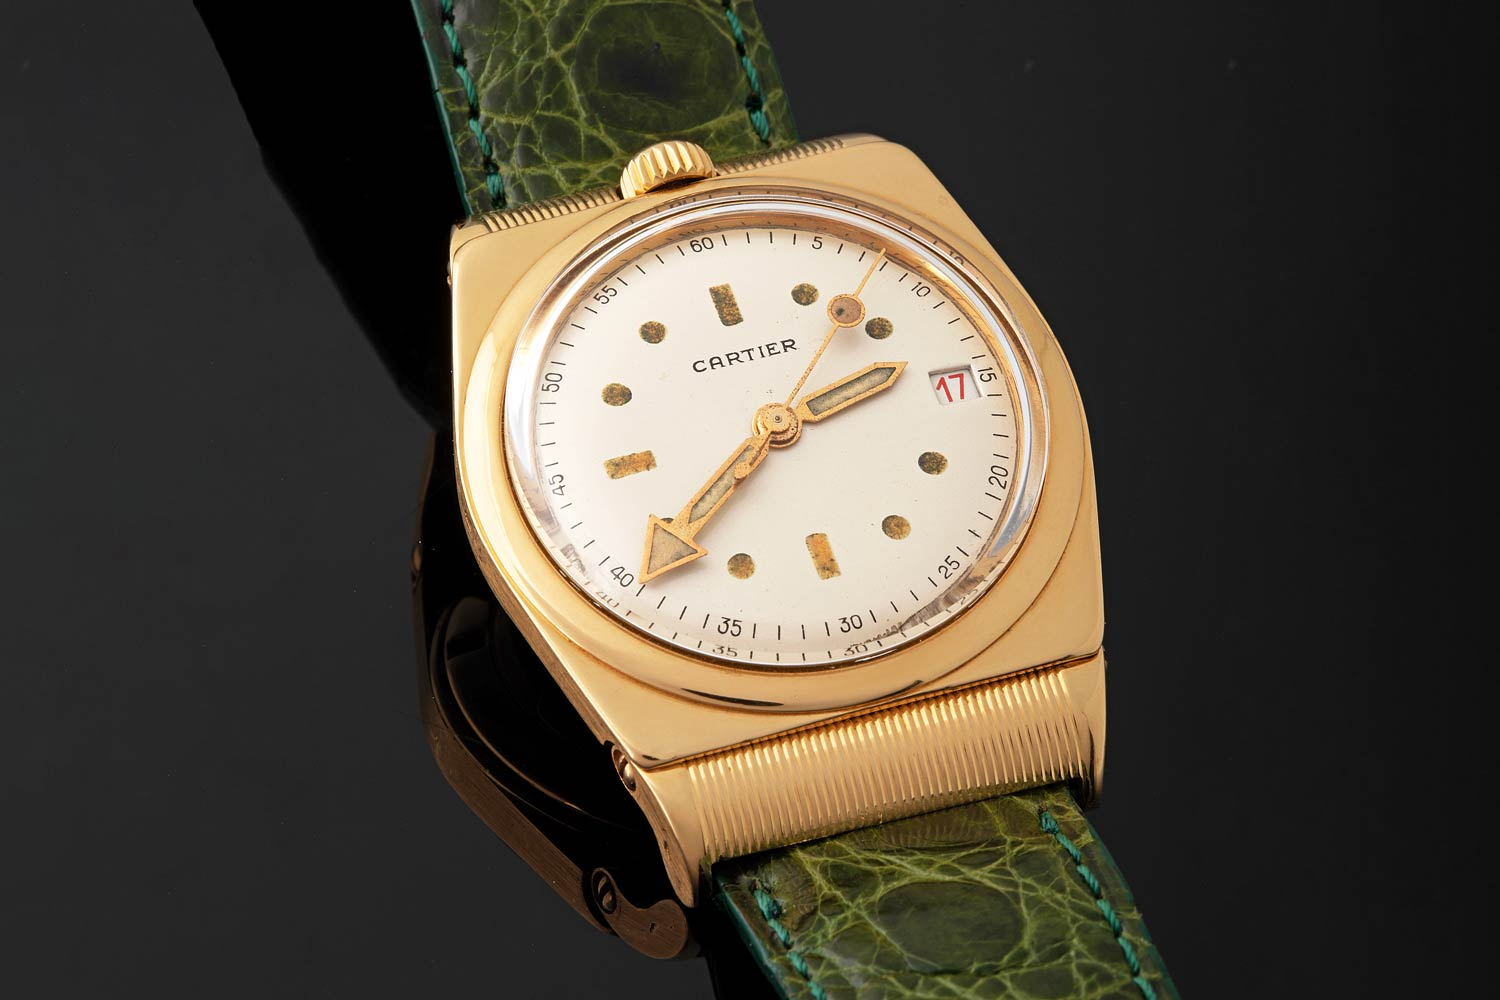 An automatic Cartier wristwatch in yellow gold waterproof case and movable 'ribbed' lugs during 1947